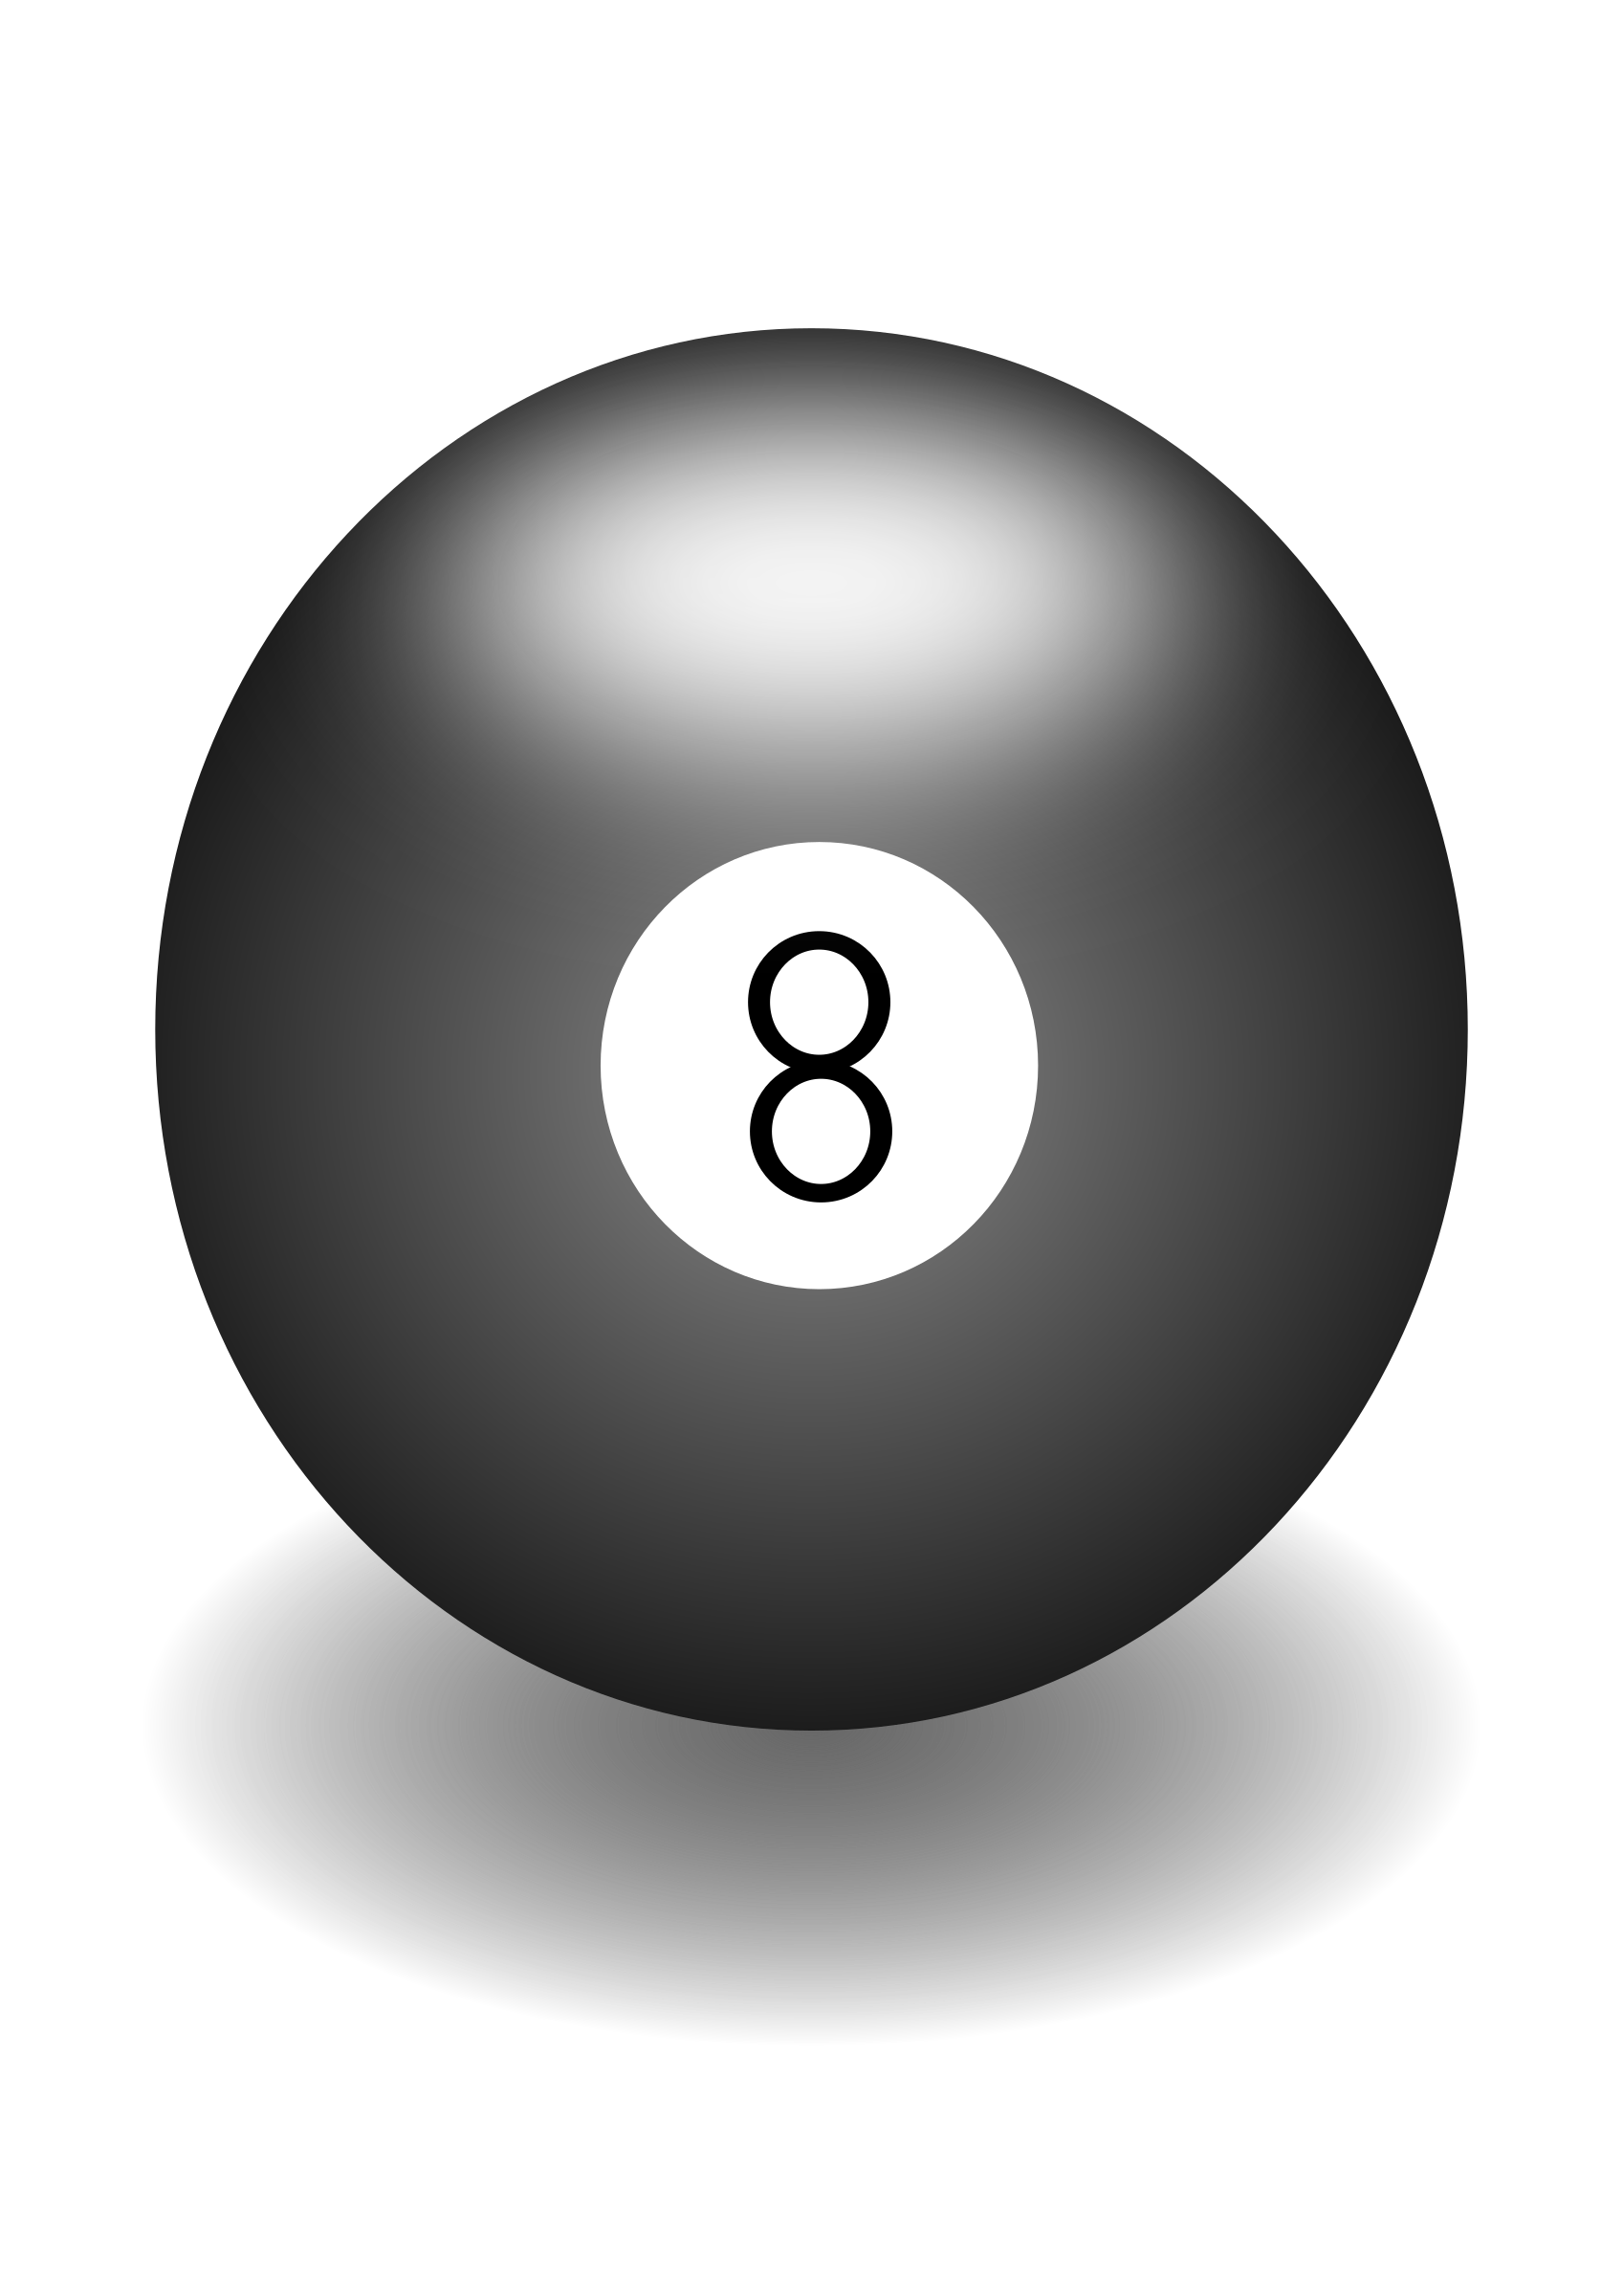 eight ball by Artmaker